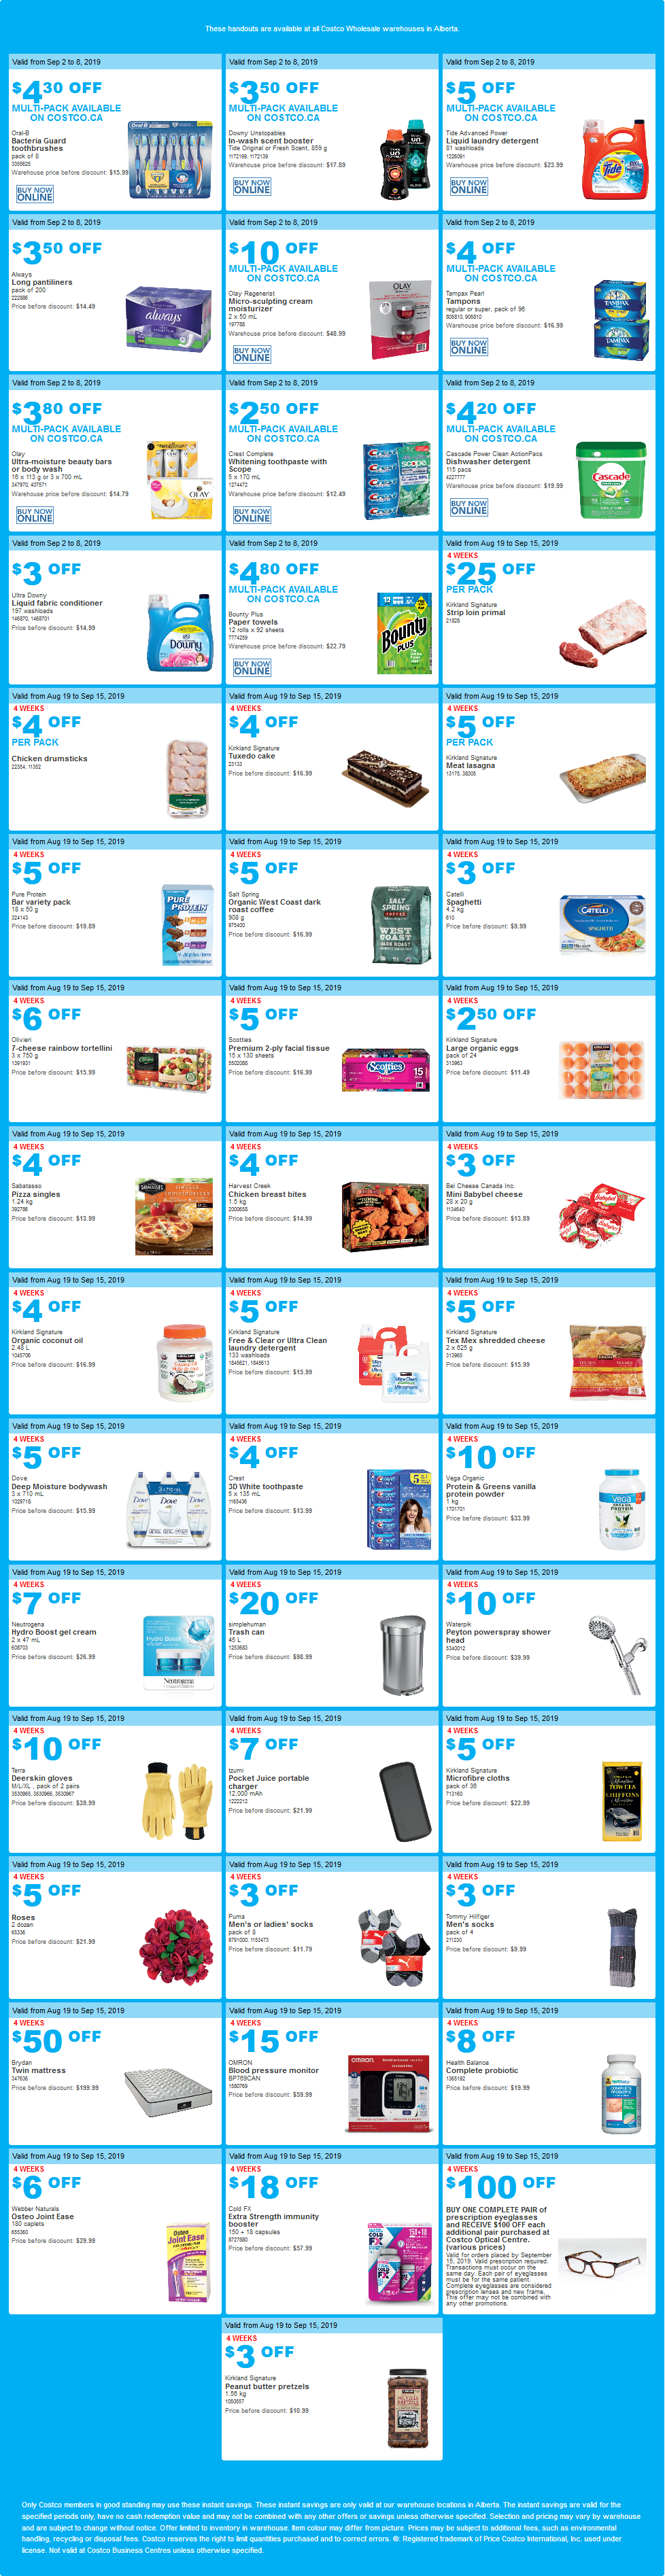 Costco Flyer for Sep 2-9, 2019 for Alberta